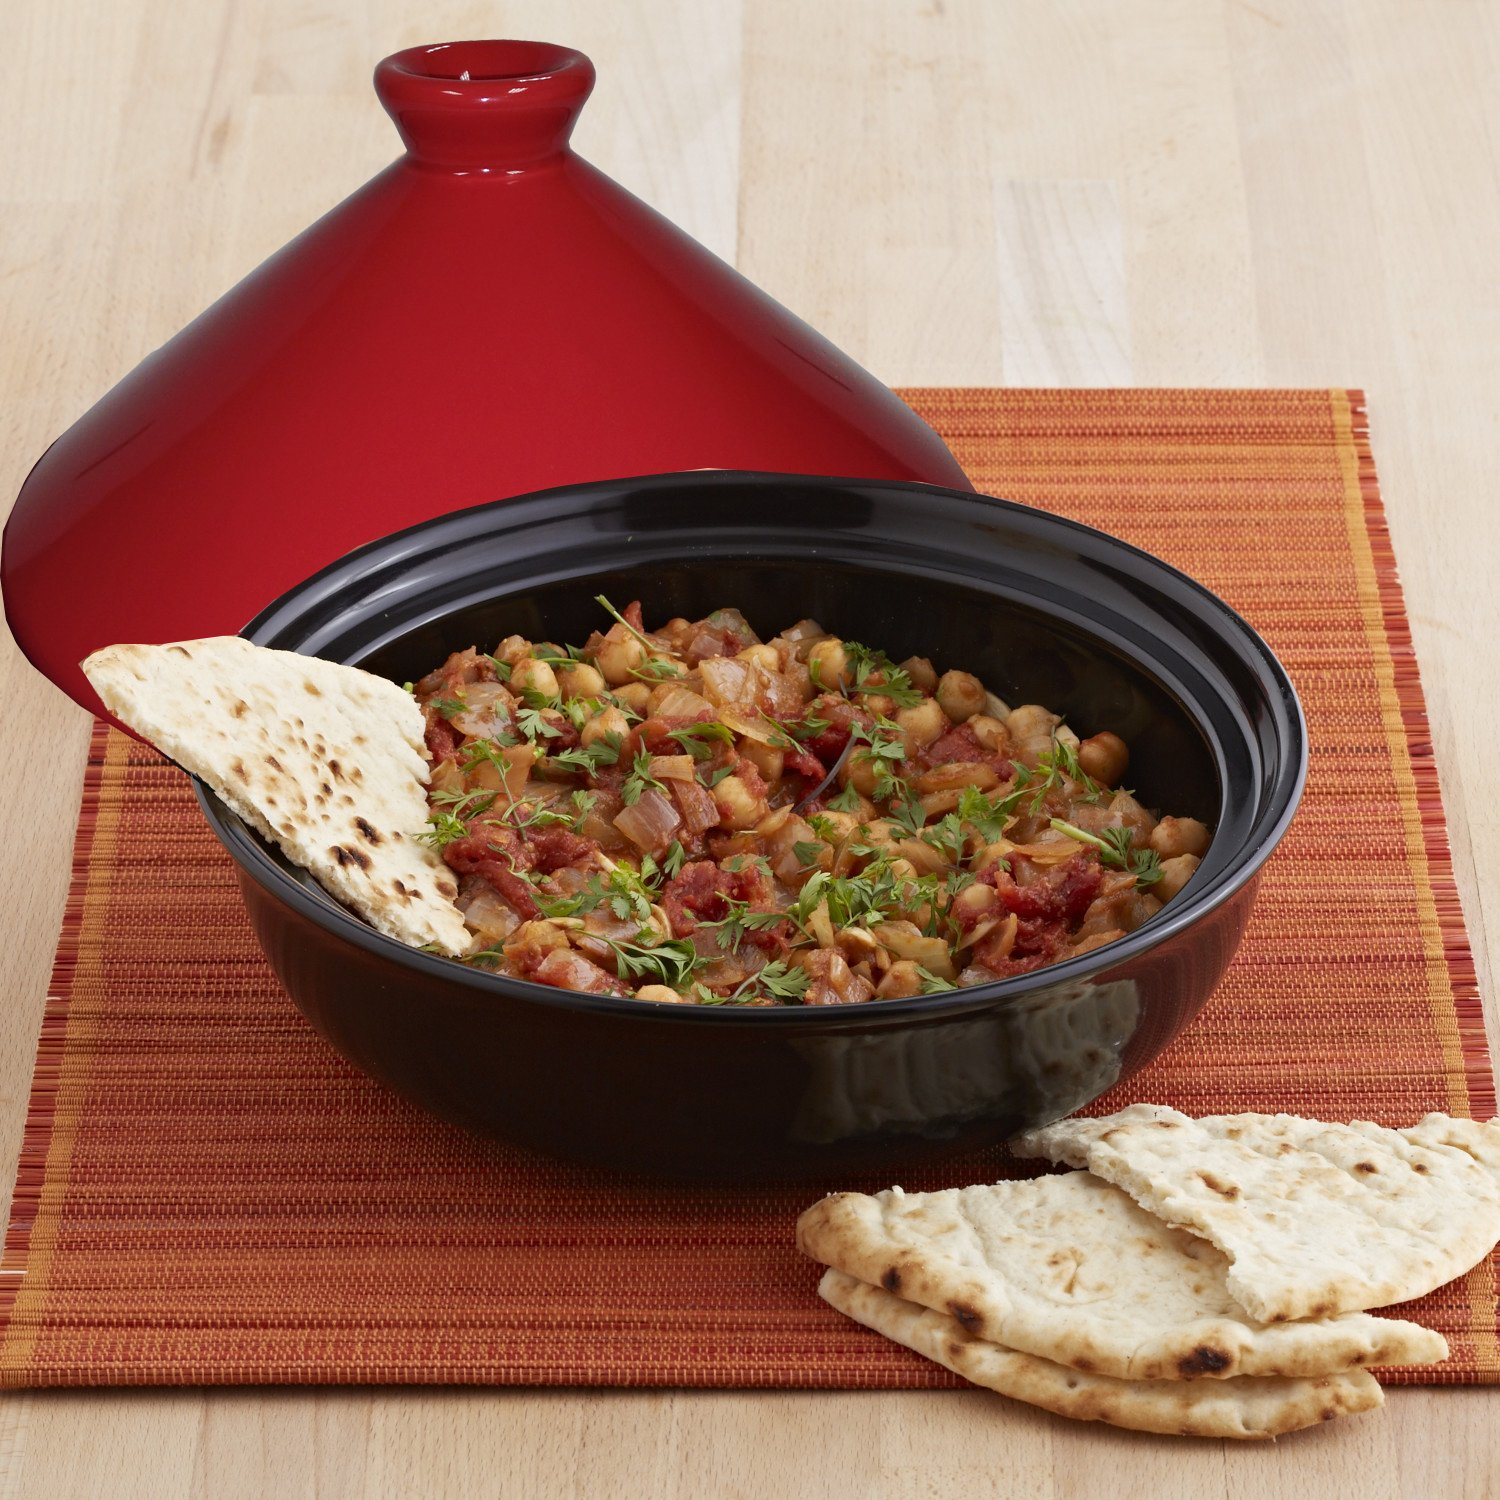 IMUSA USA GKM-61001 GK Ceramic Tagine Pot 2.1-Quart, Red